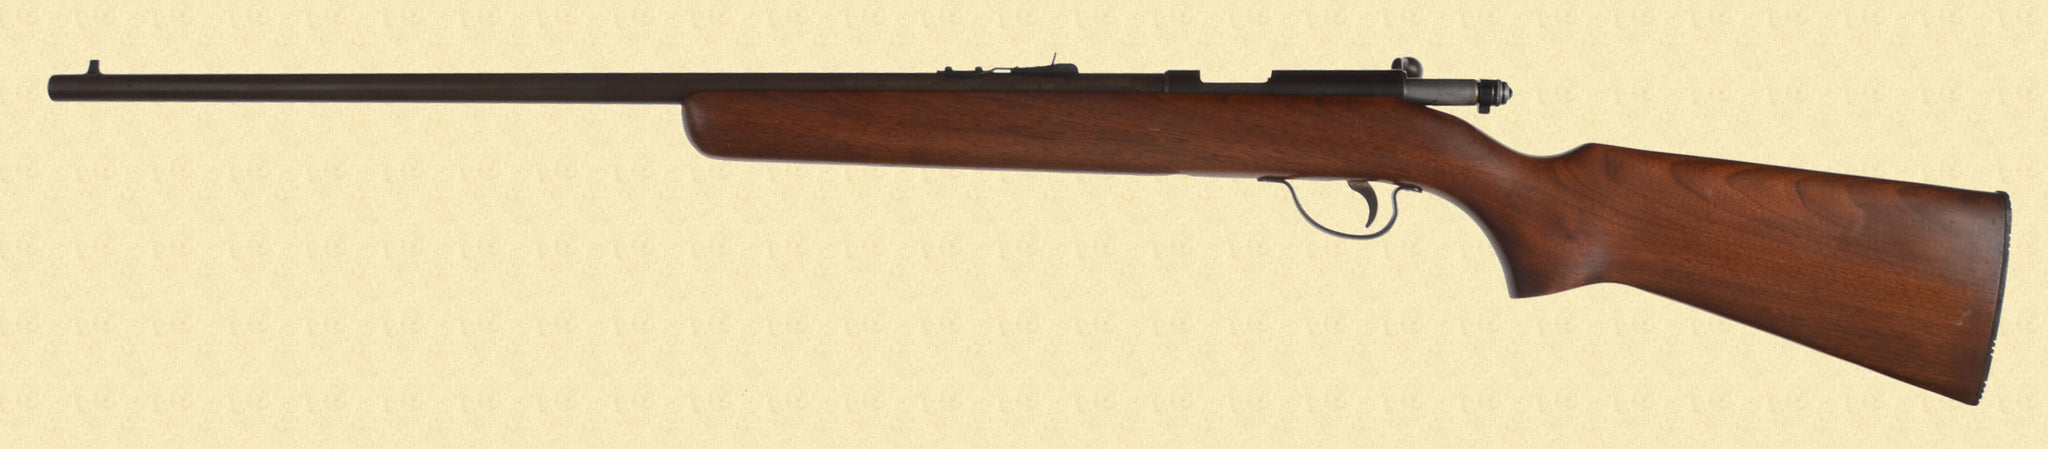 REMINGTON MODEL 514